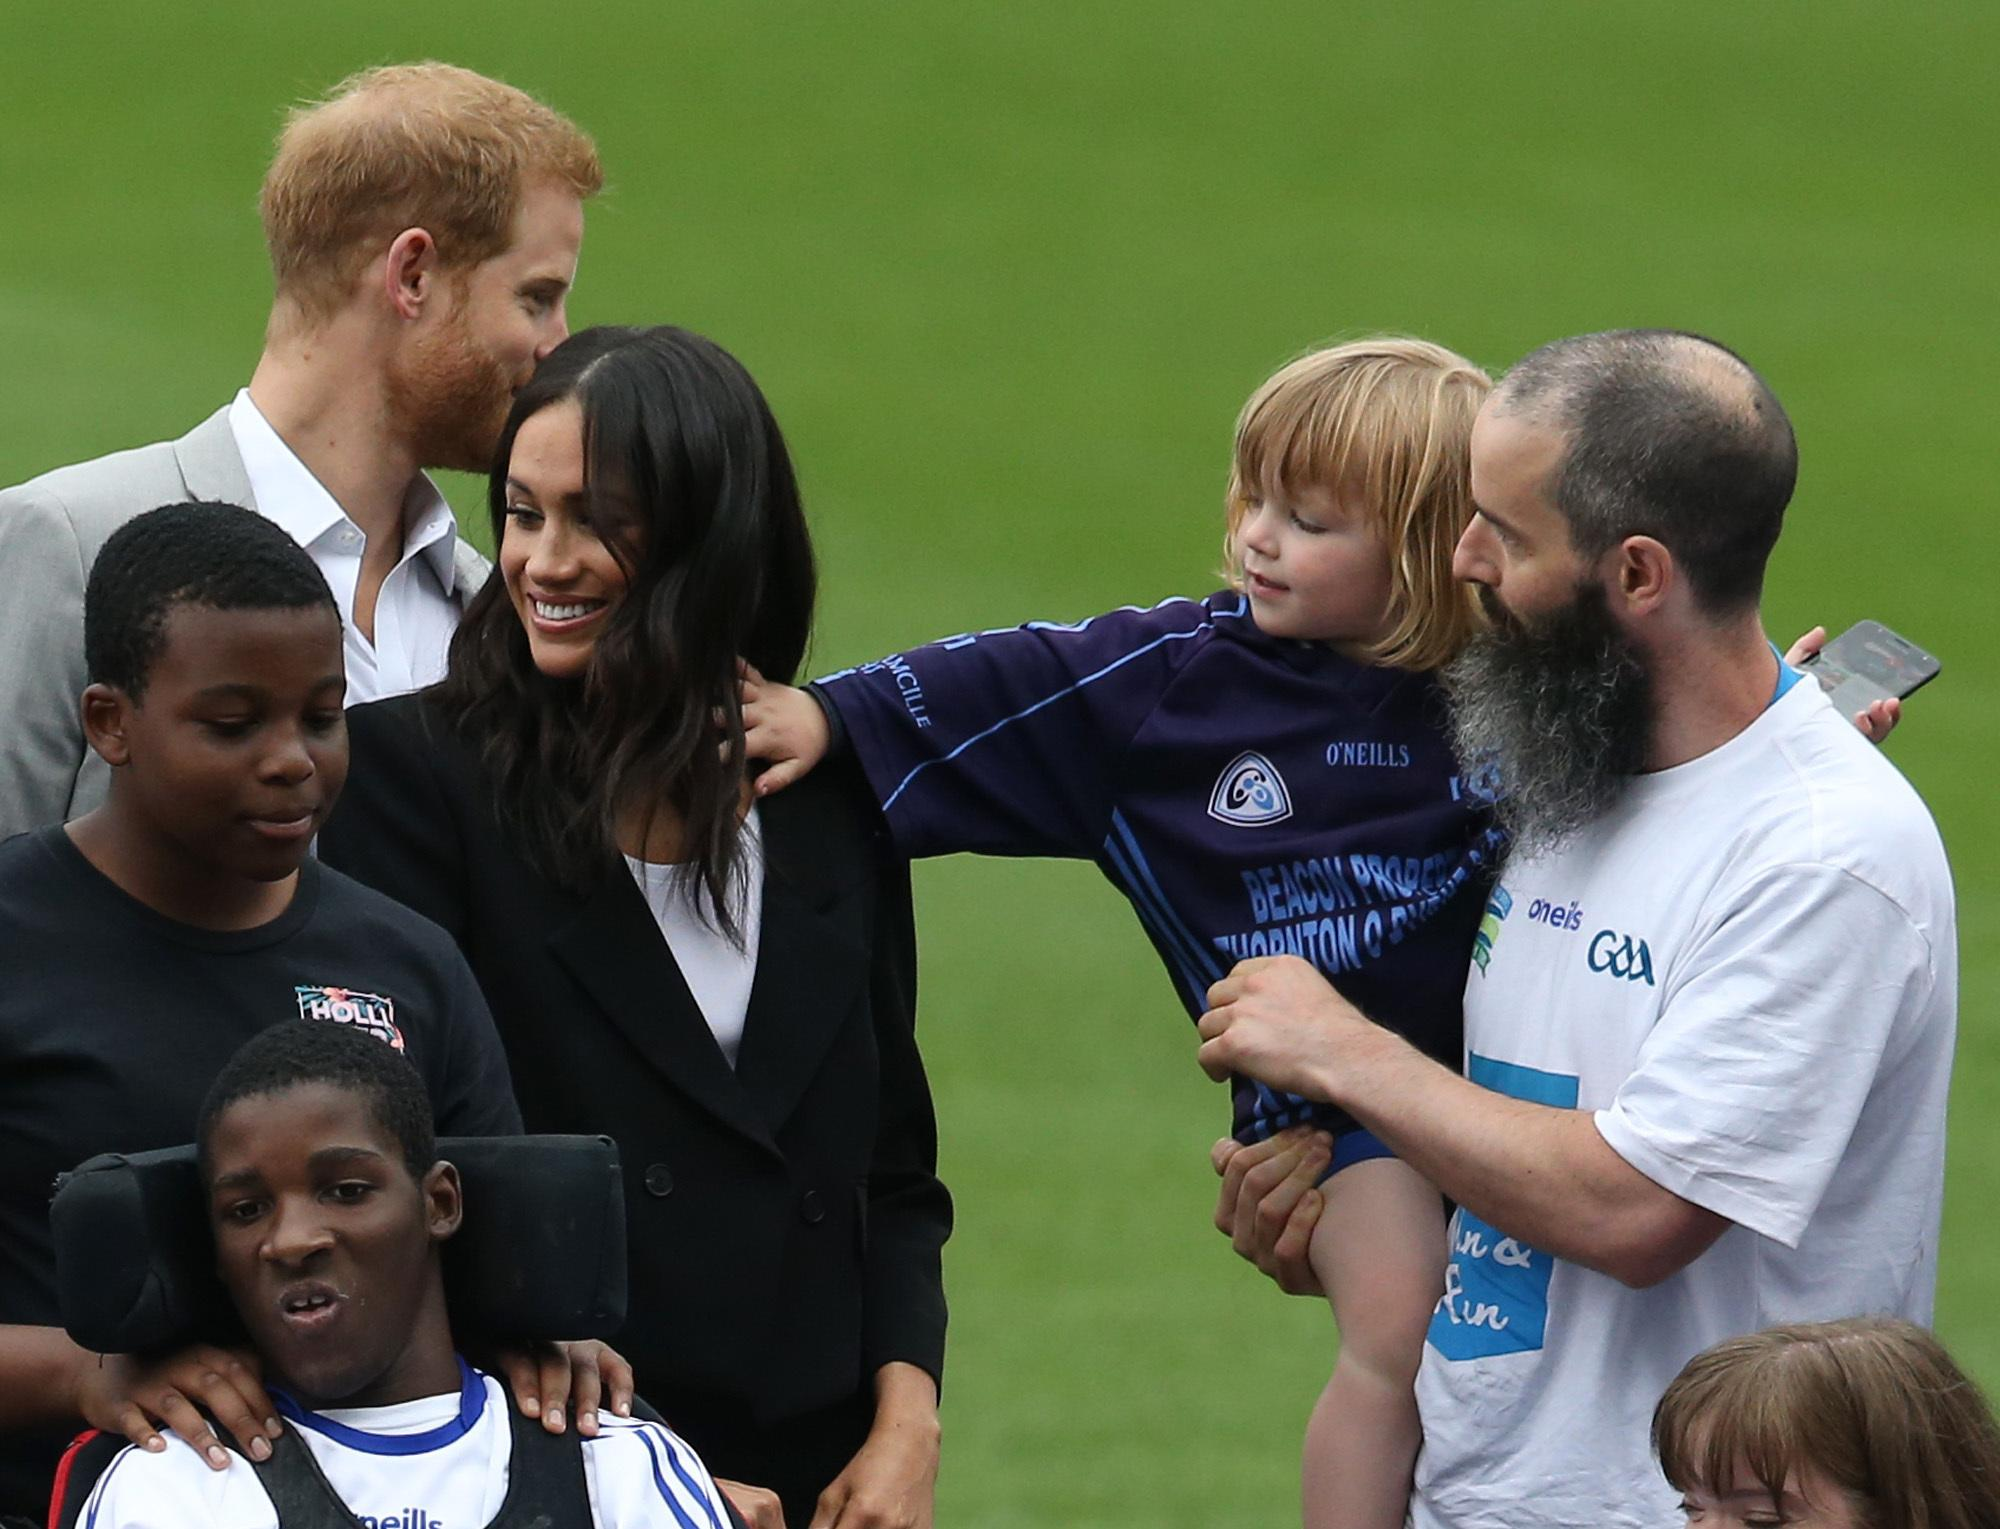 Walter Kieran, 3, reaches out to touch the Duchess of Sussex's hair during her visit with the Duke of Sussex to Croke Park in Dublin, Ireland.